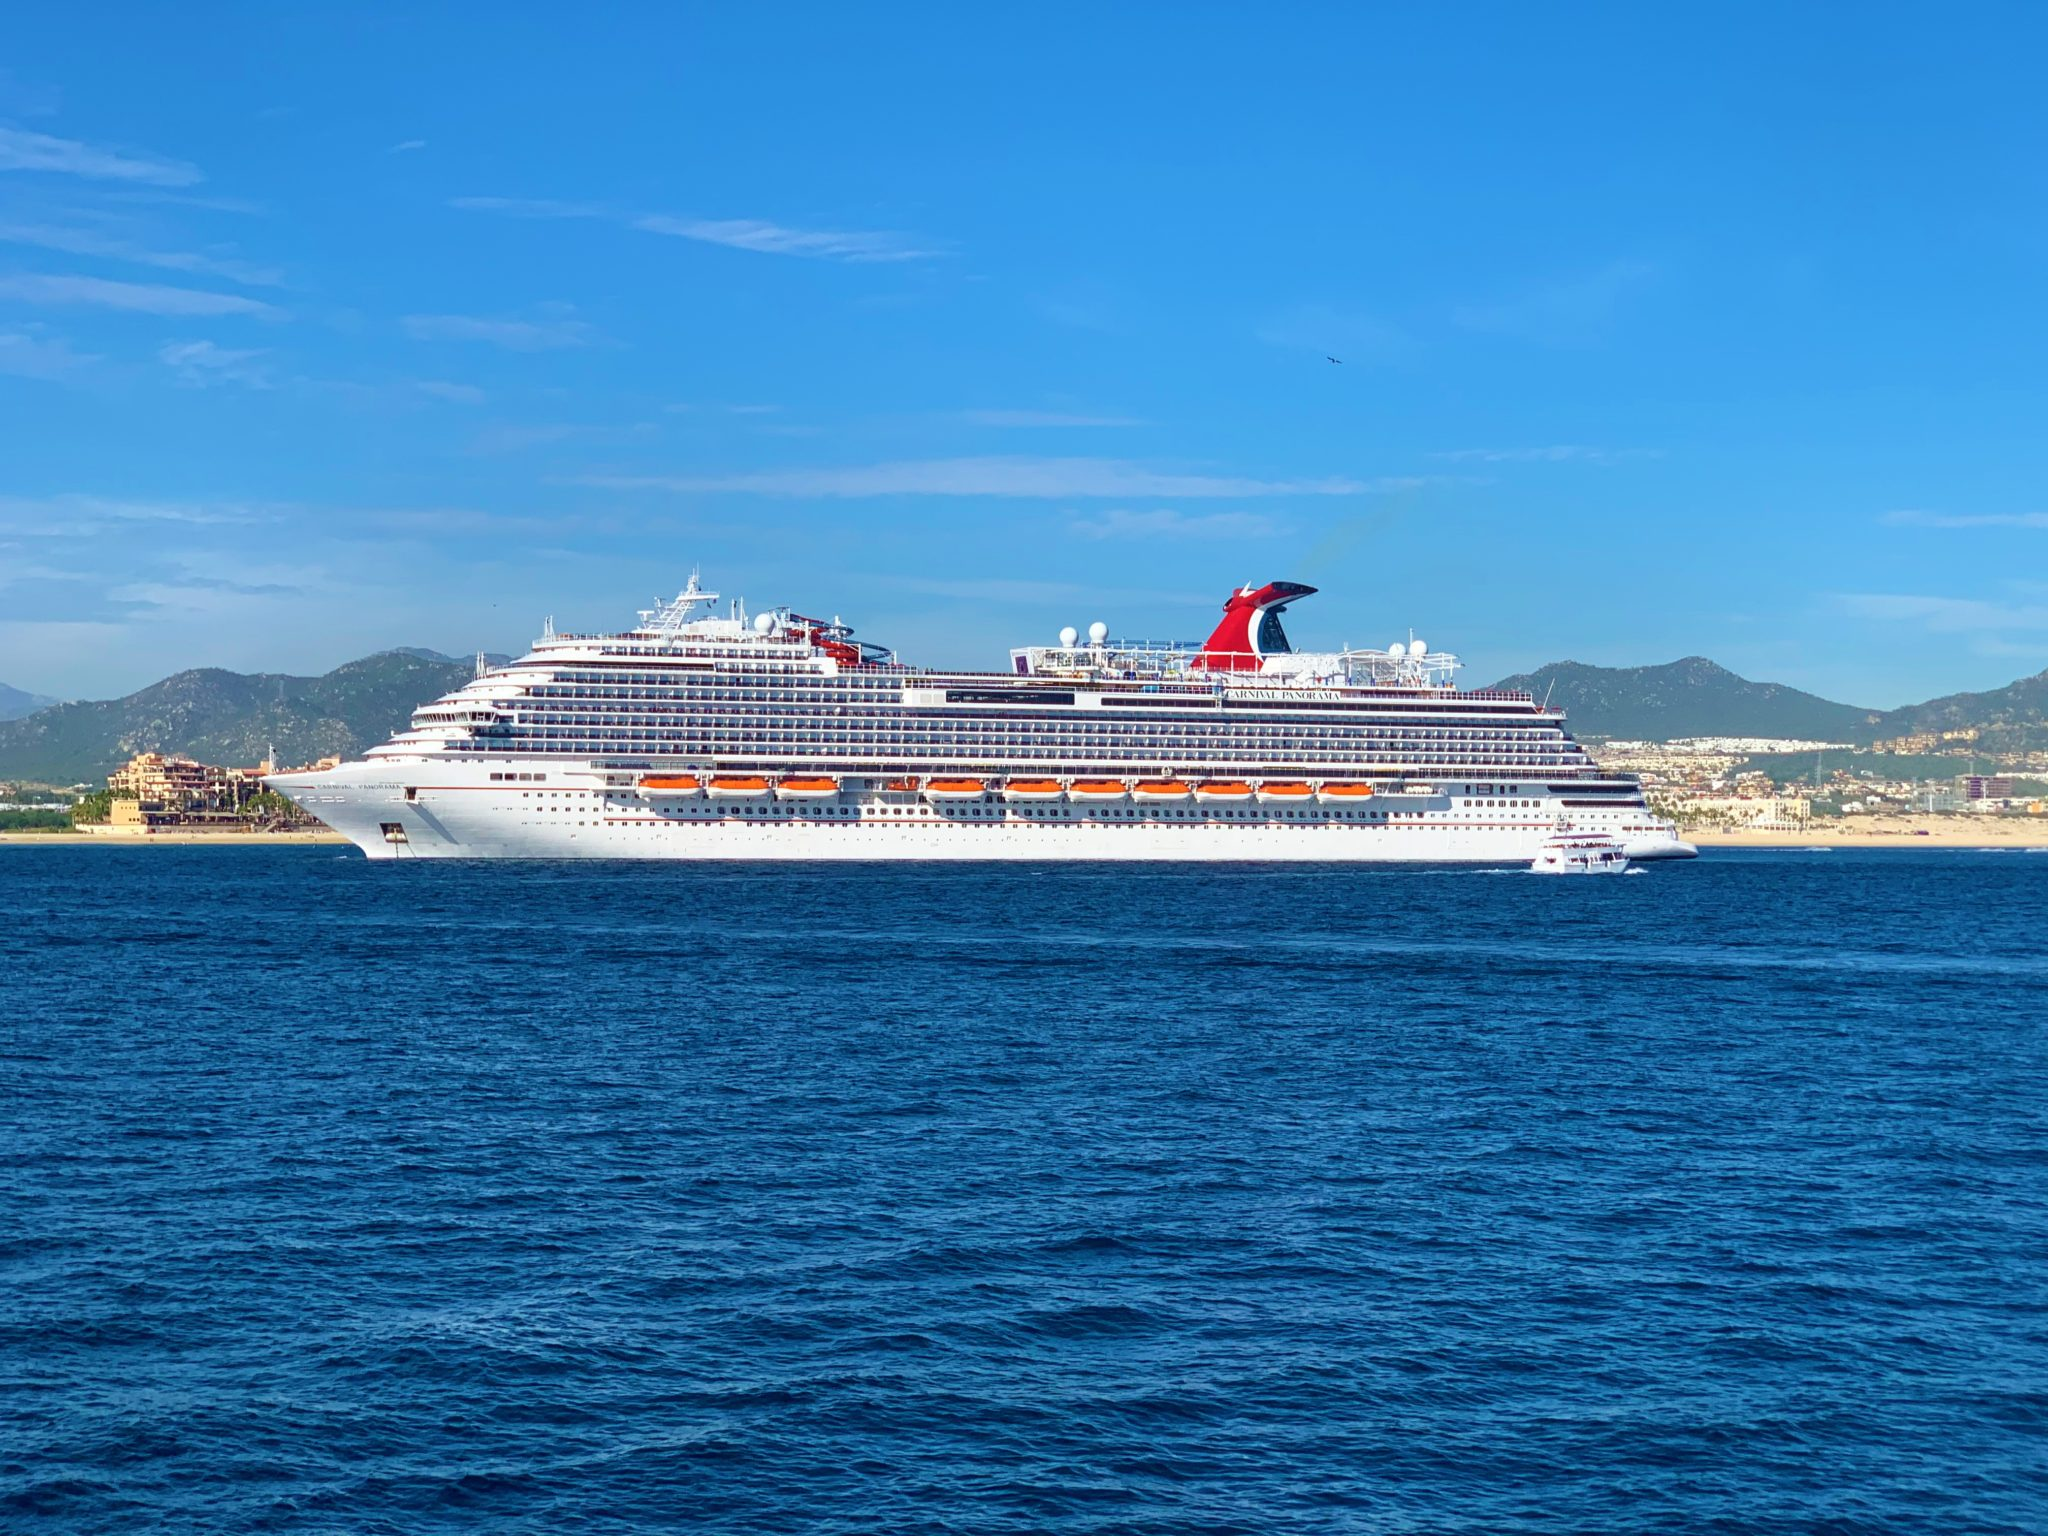 Cruise Ships Located During Cruise Suspension